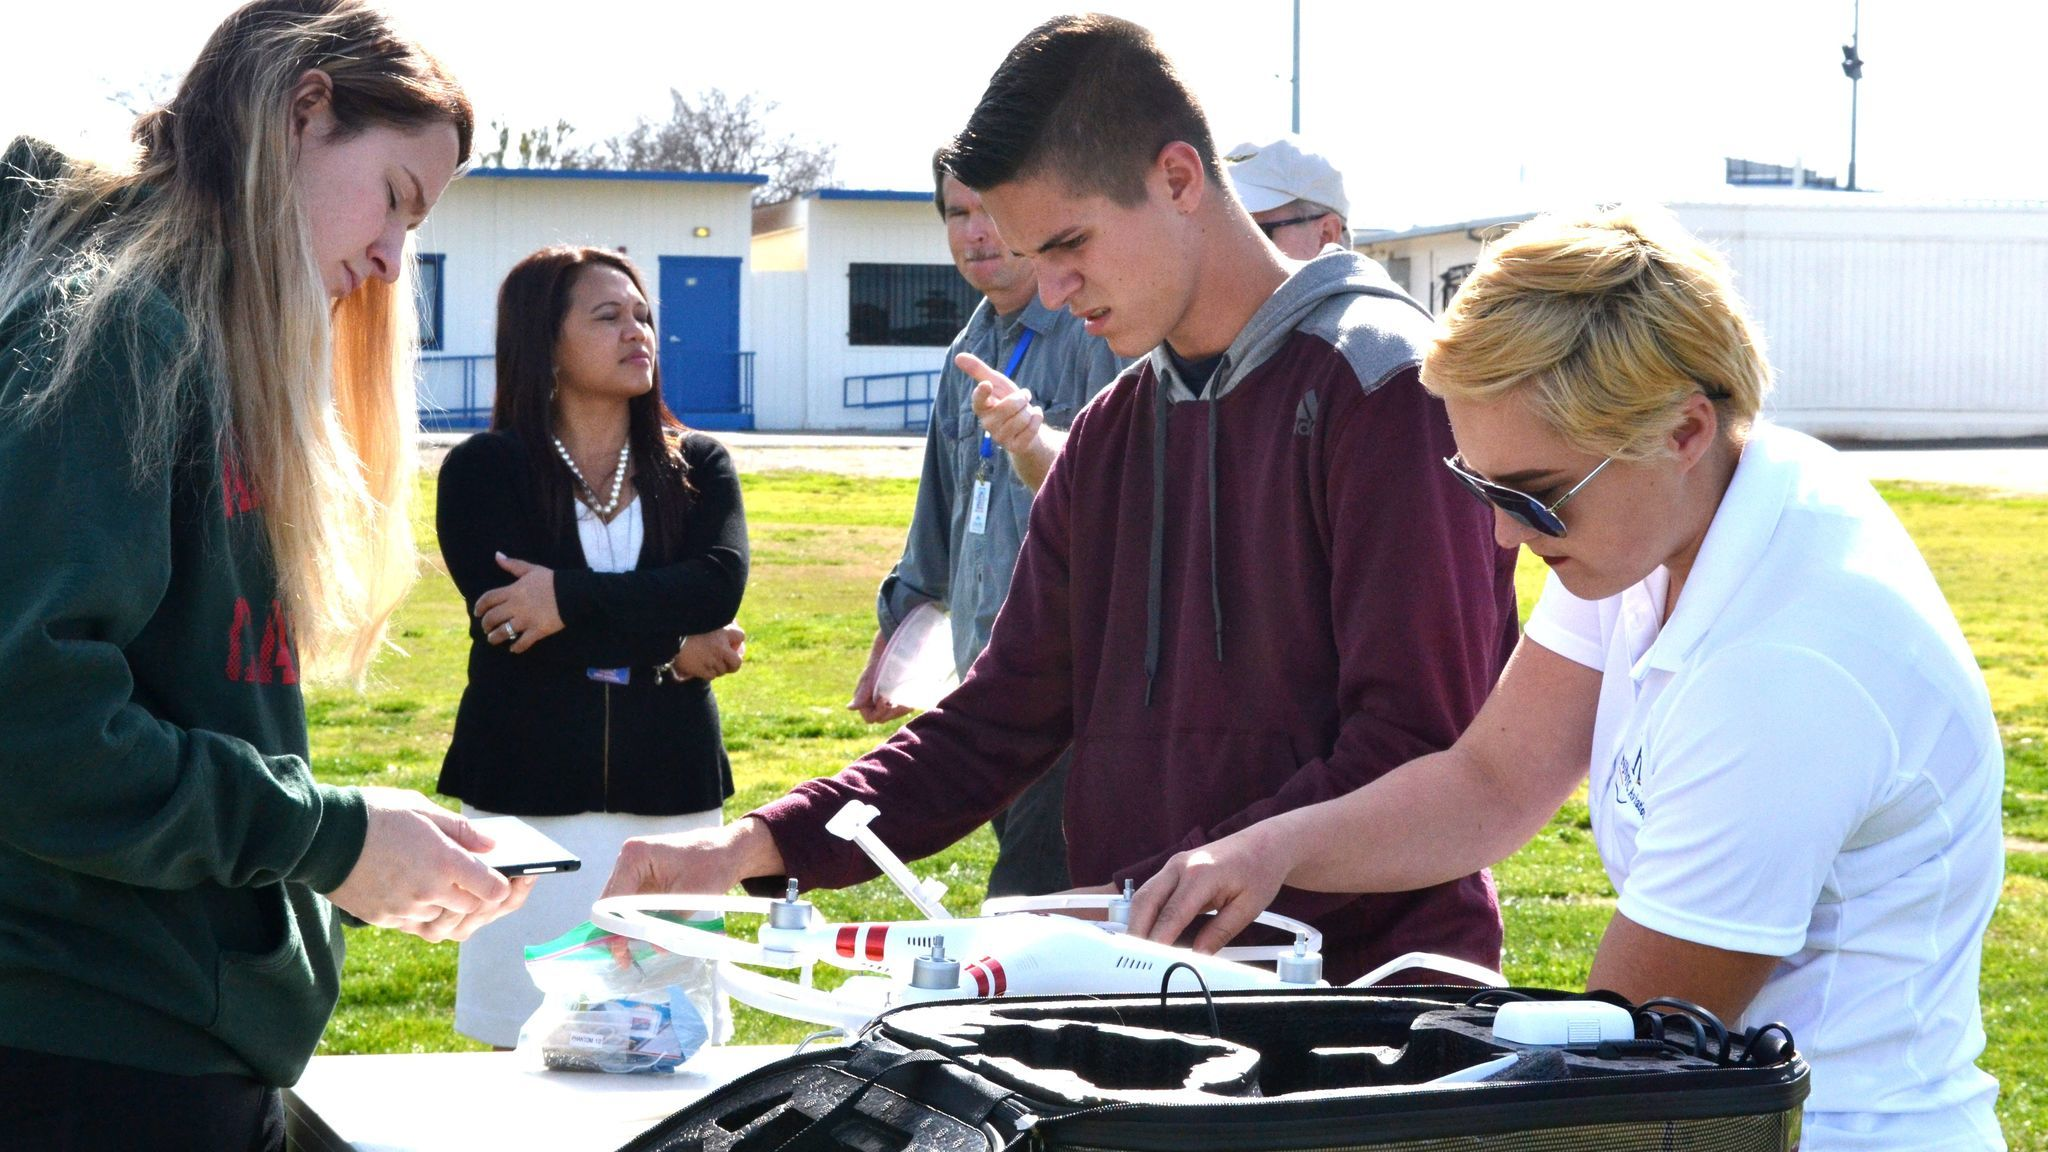 NS4 cadets Emma Hopperton, Ethan Parsons, and Alaina Sills prepare the drone for take-off.